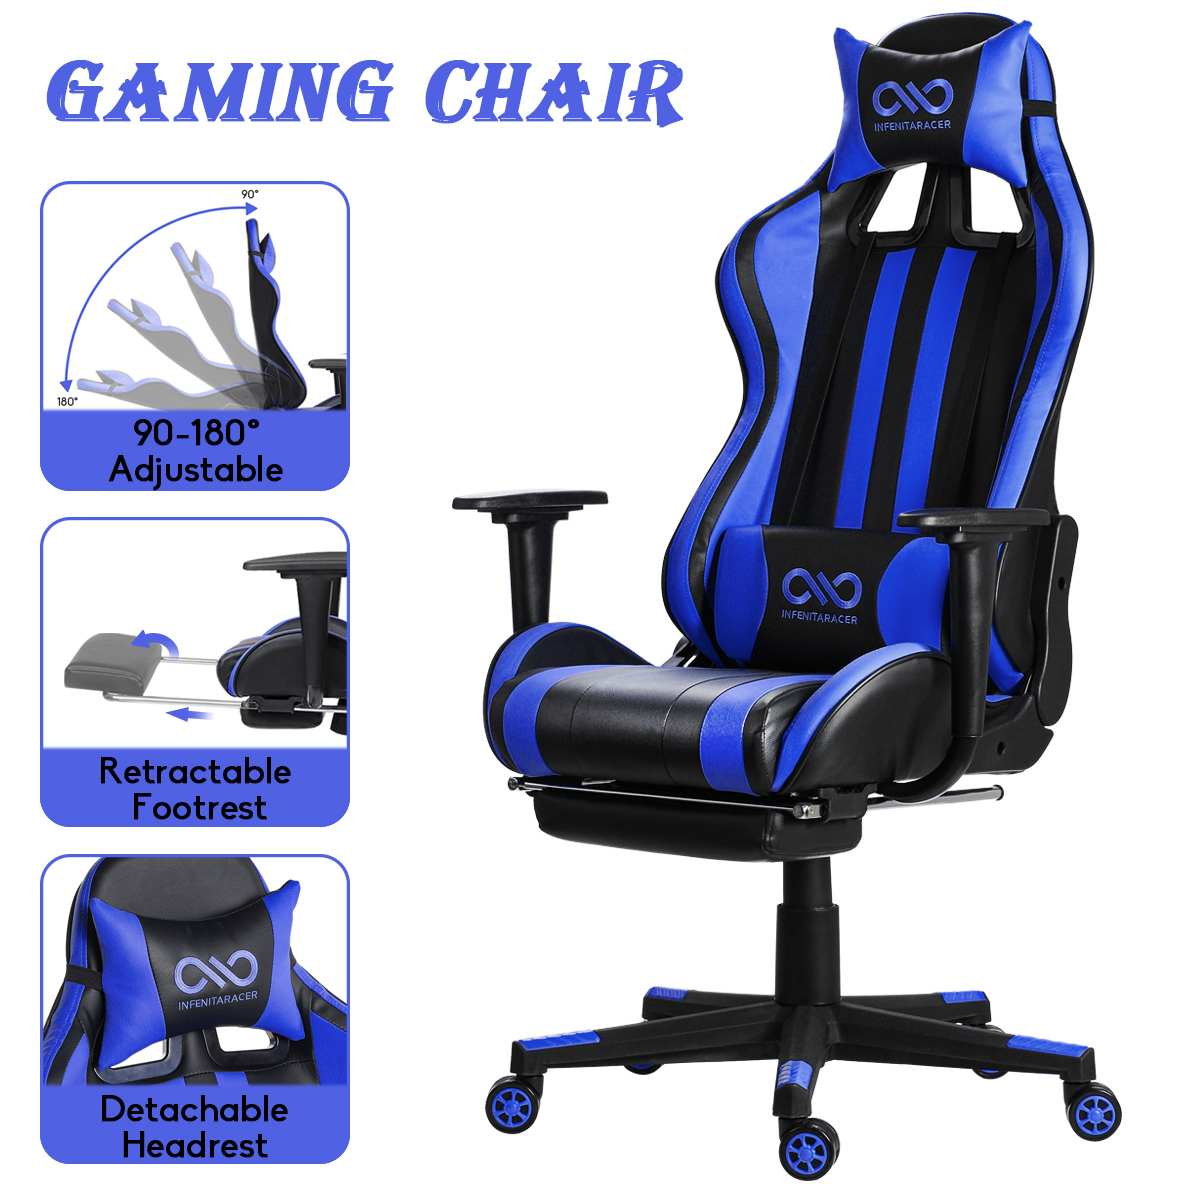 Hf8438429e24544d3a20db0c0b46377abx - Office Gaming Chair PVC Household Armchair Lift and Swivel Function Ergonomic Office Computer Chair Wcg Gamer Chairs